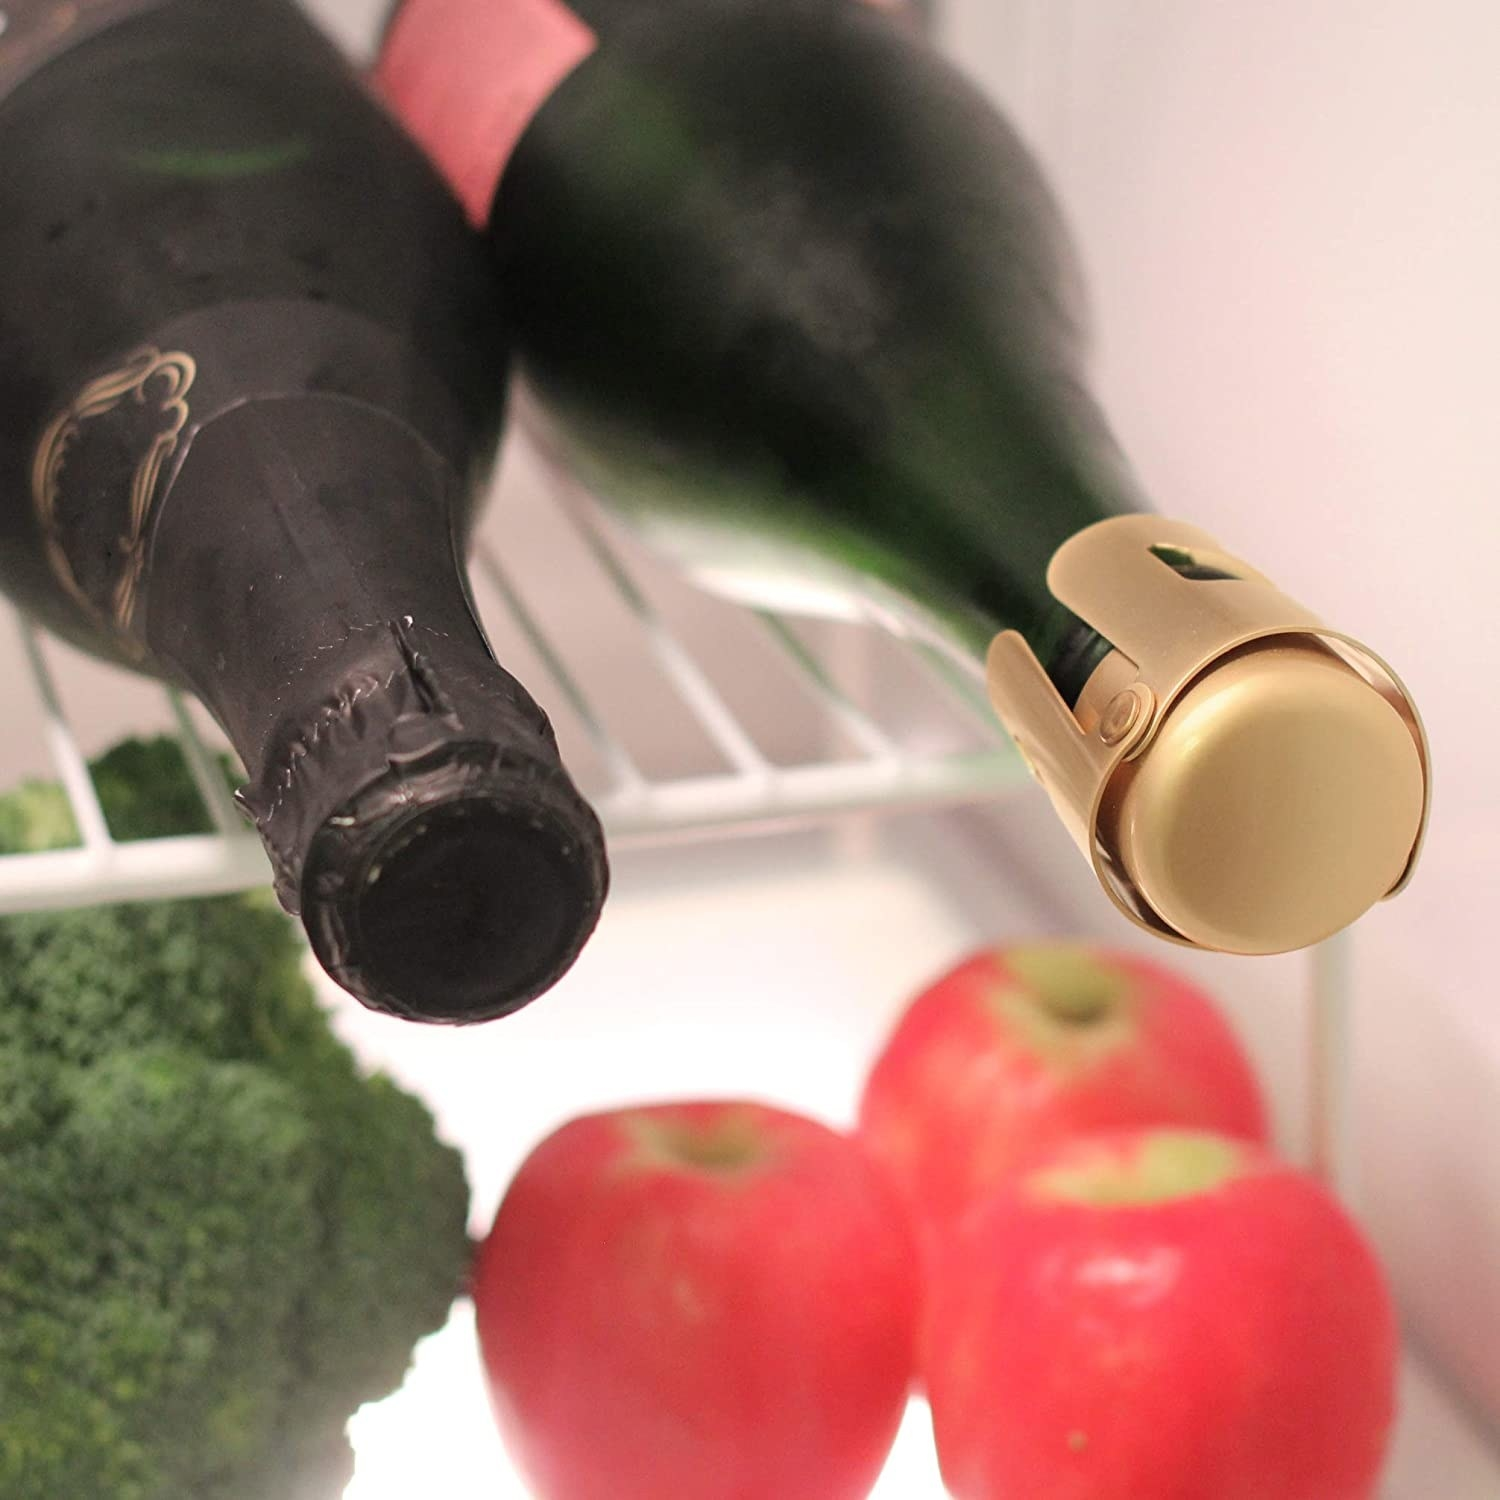 A bottle of sparkling wine capped with the bottle stopper rests on a fridge shelf